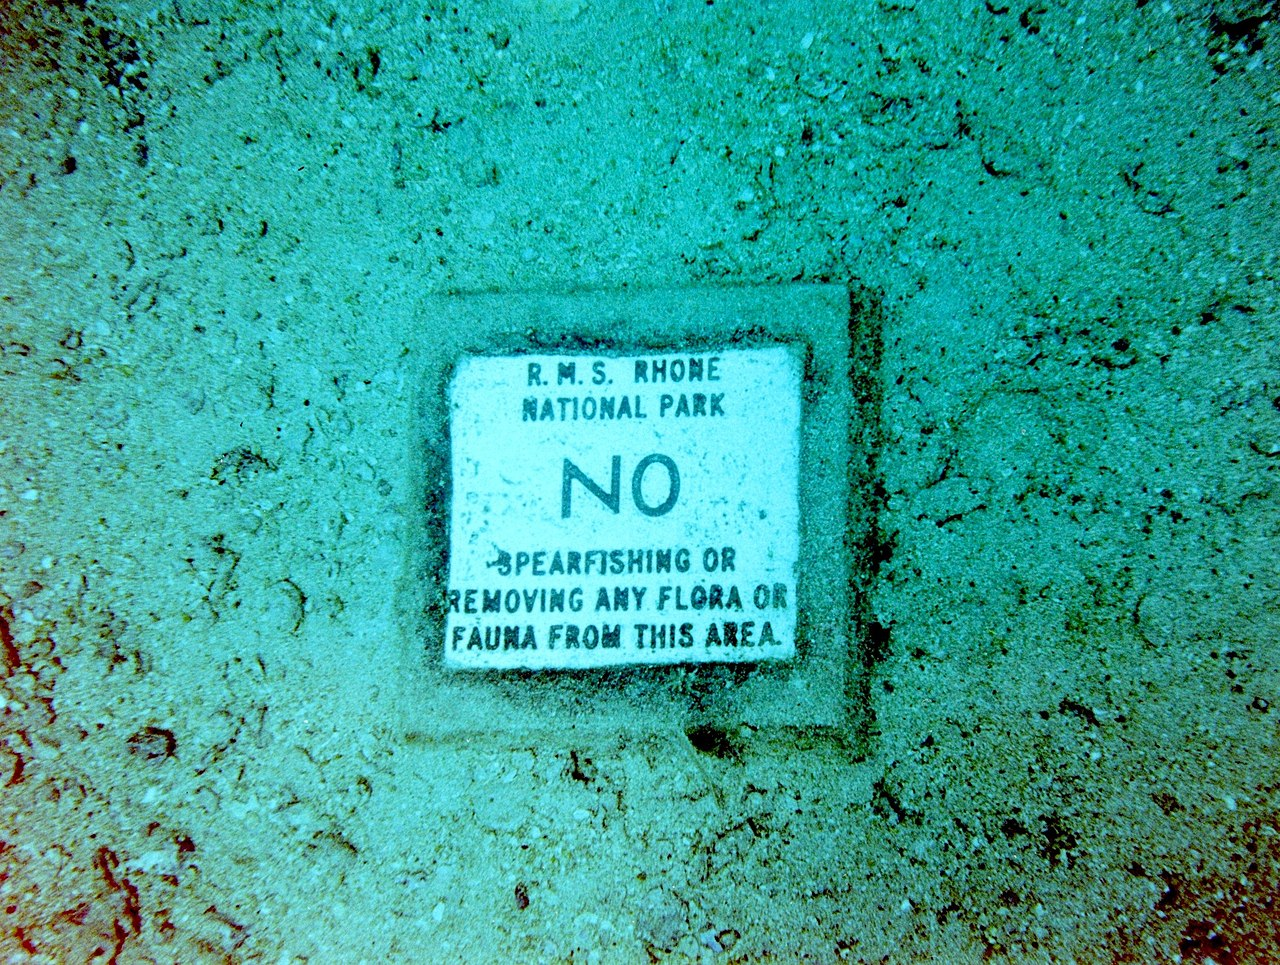 A sign on ocean floor prohibiting spearfishing or any kind of fishing. Photo by O'Dea at Wikimedia Commons